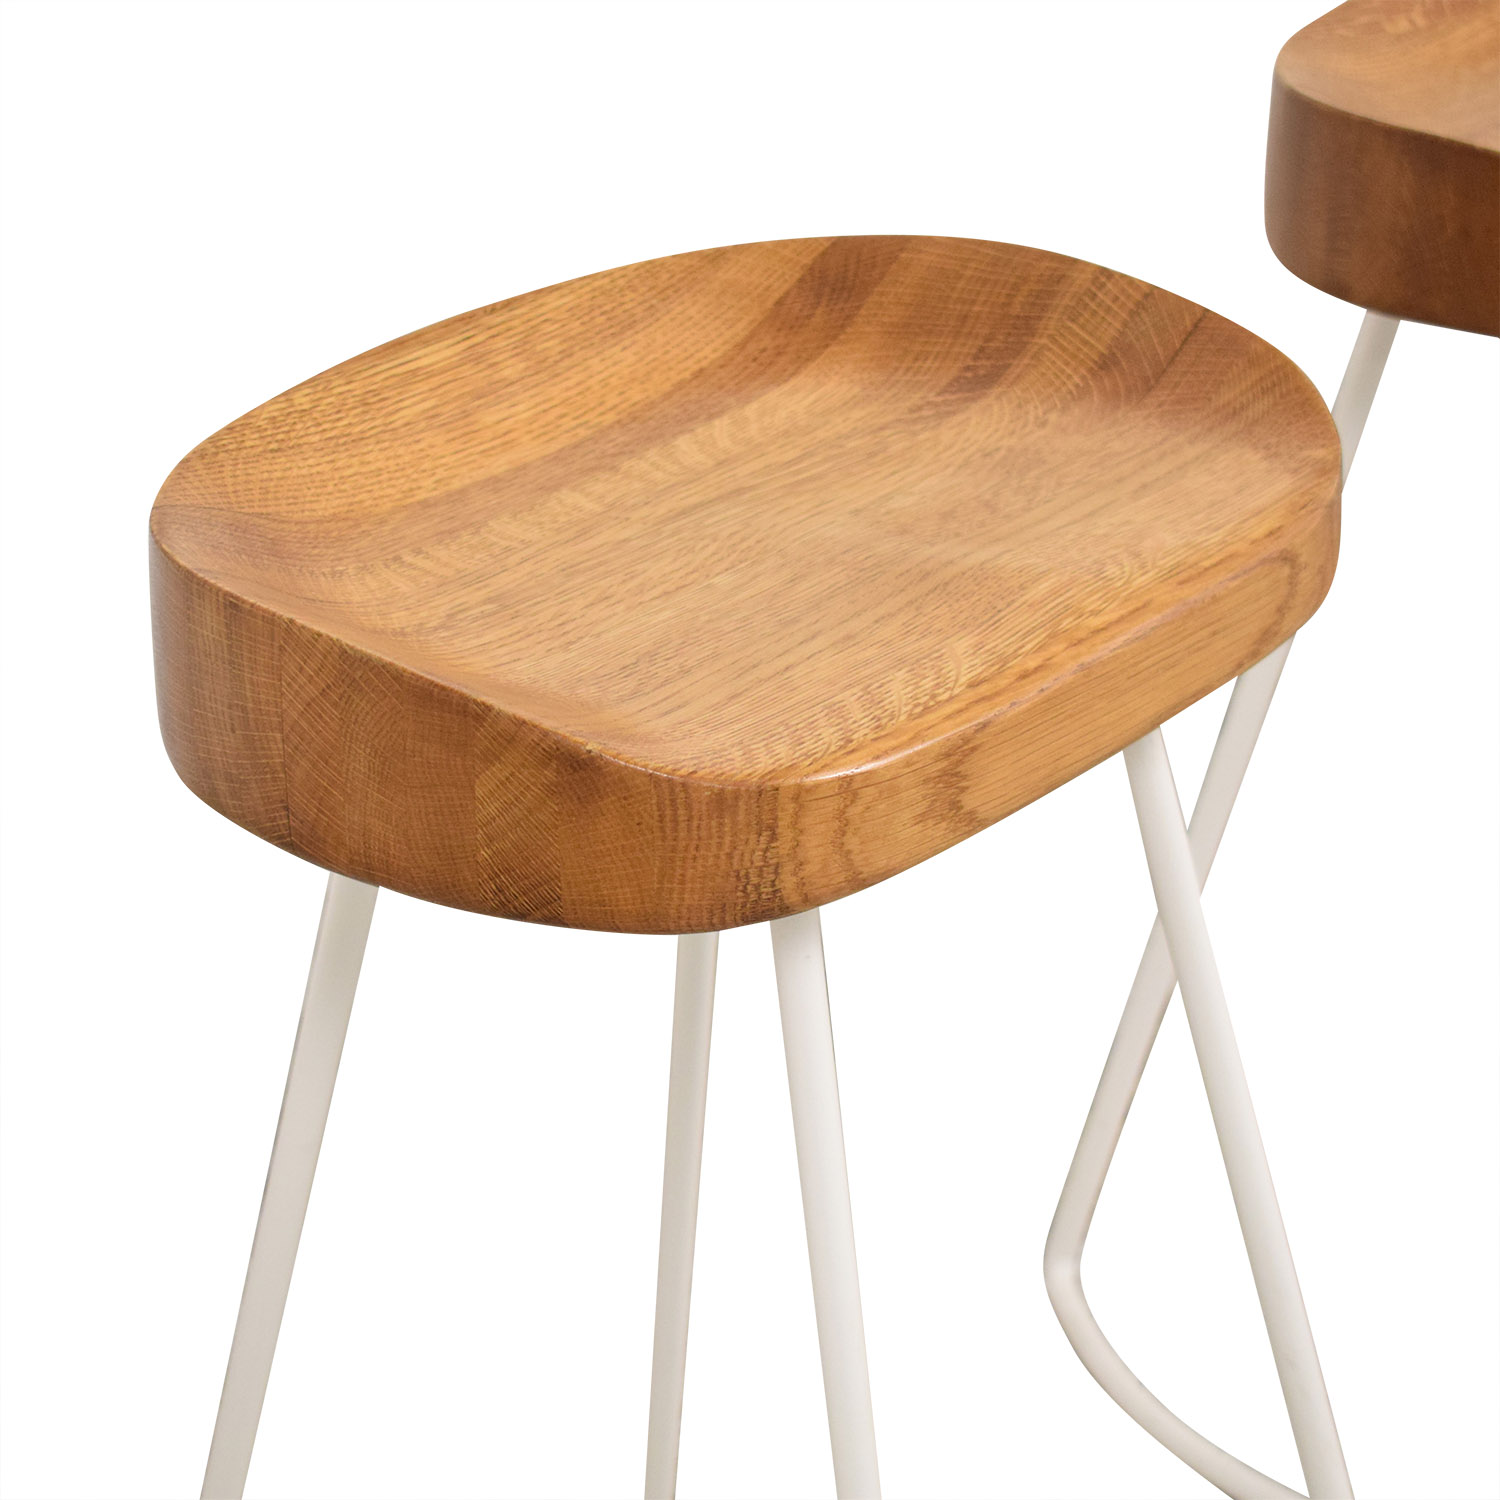 Wisteria Wisteria Natural Smart and Sleek Counter Stools ma